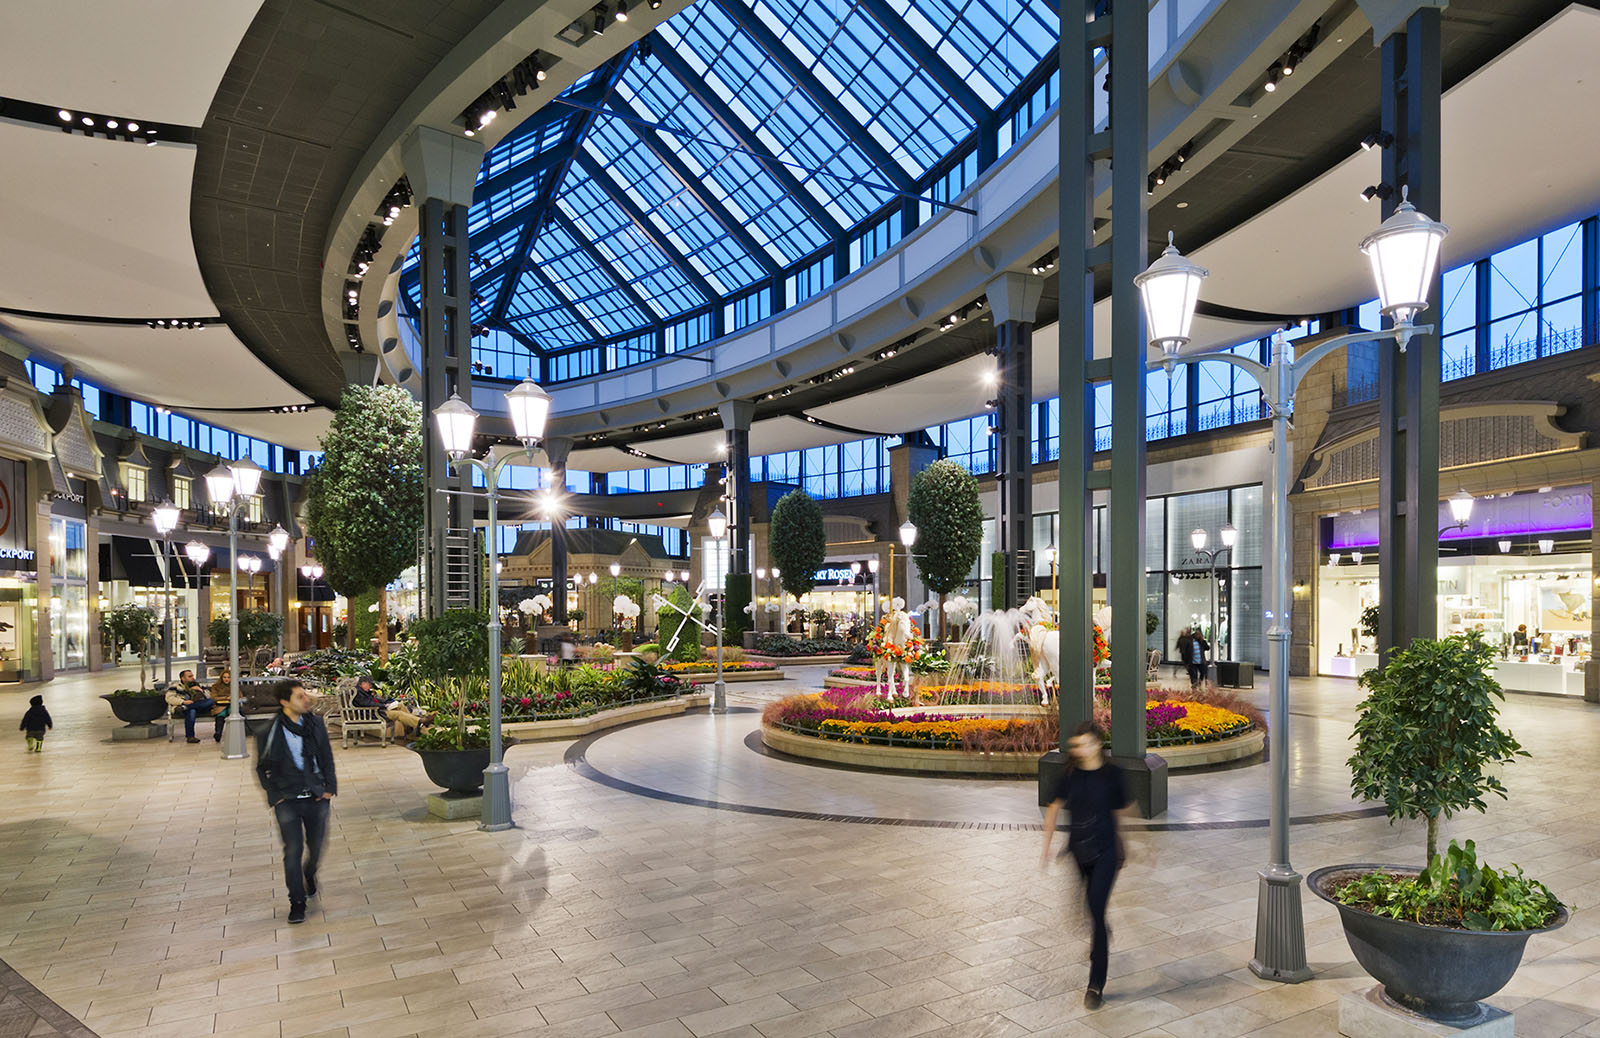 View of Garden Atrium at Carrefour Laval Shopping Centre, Montreal, Quebec